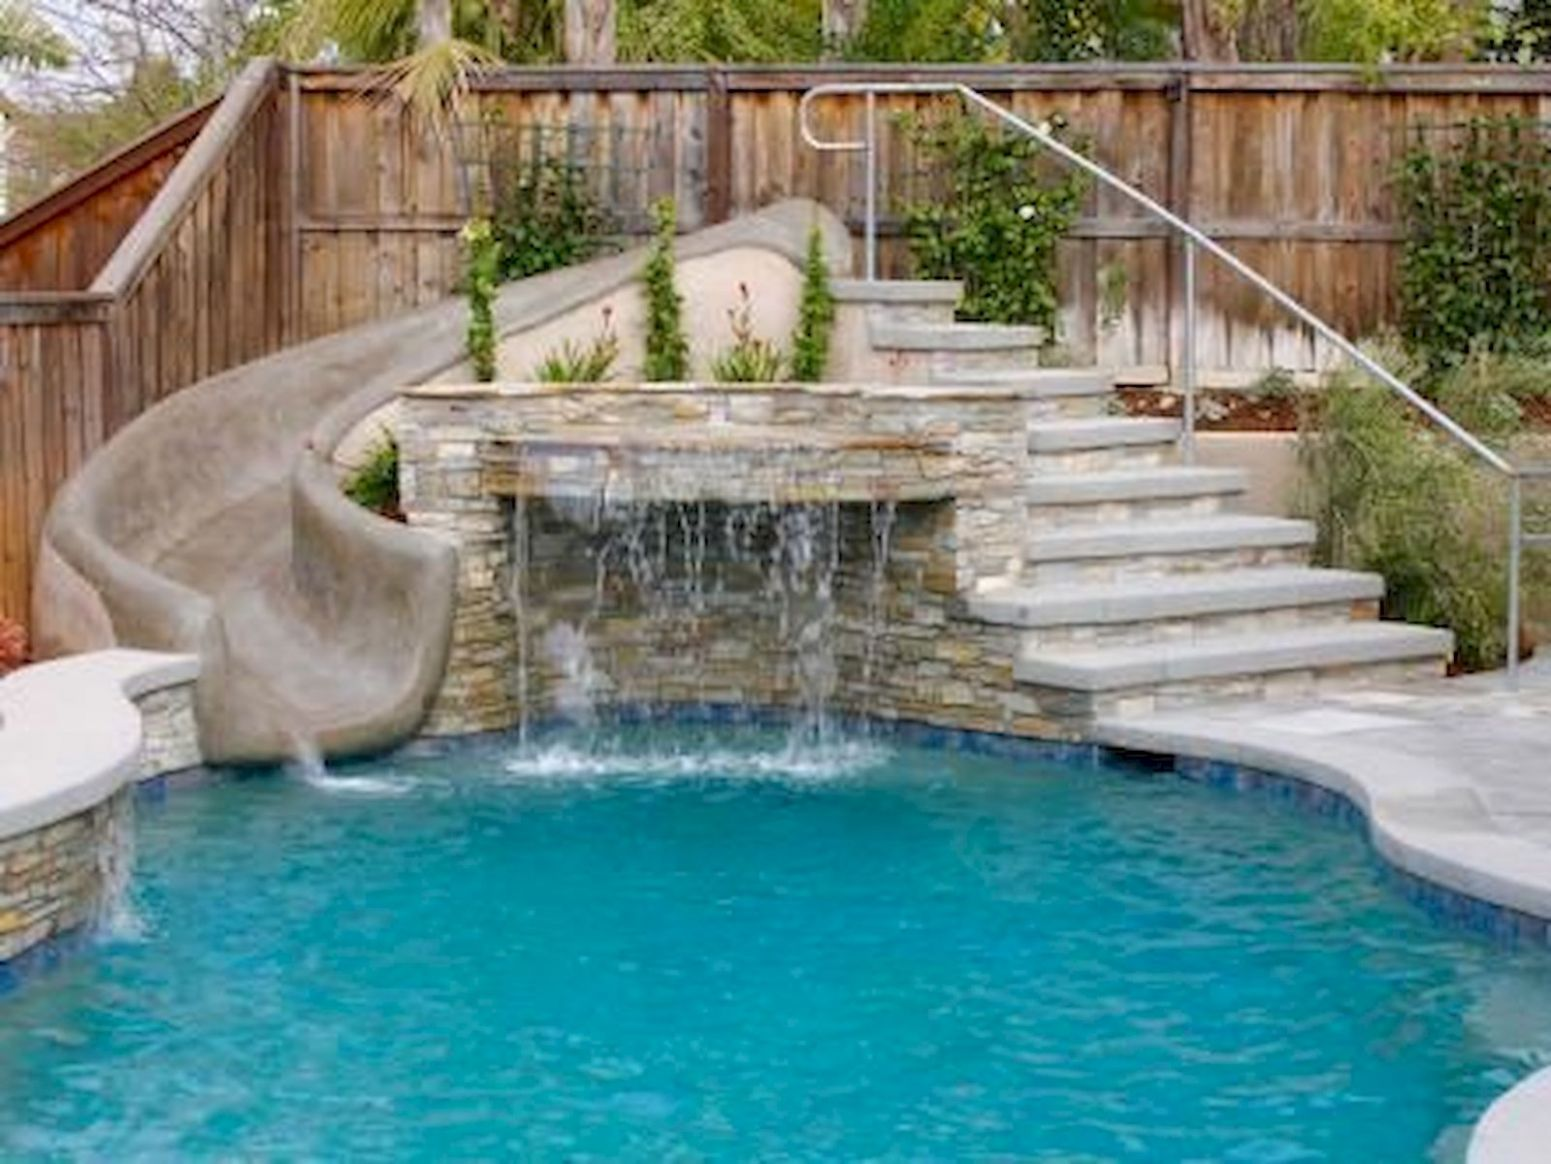 9 Awesome Backyard Swimming Pools Design Ideas (9) - house9.com